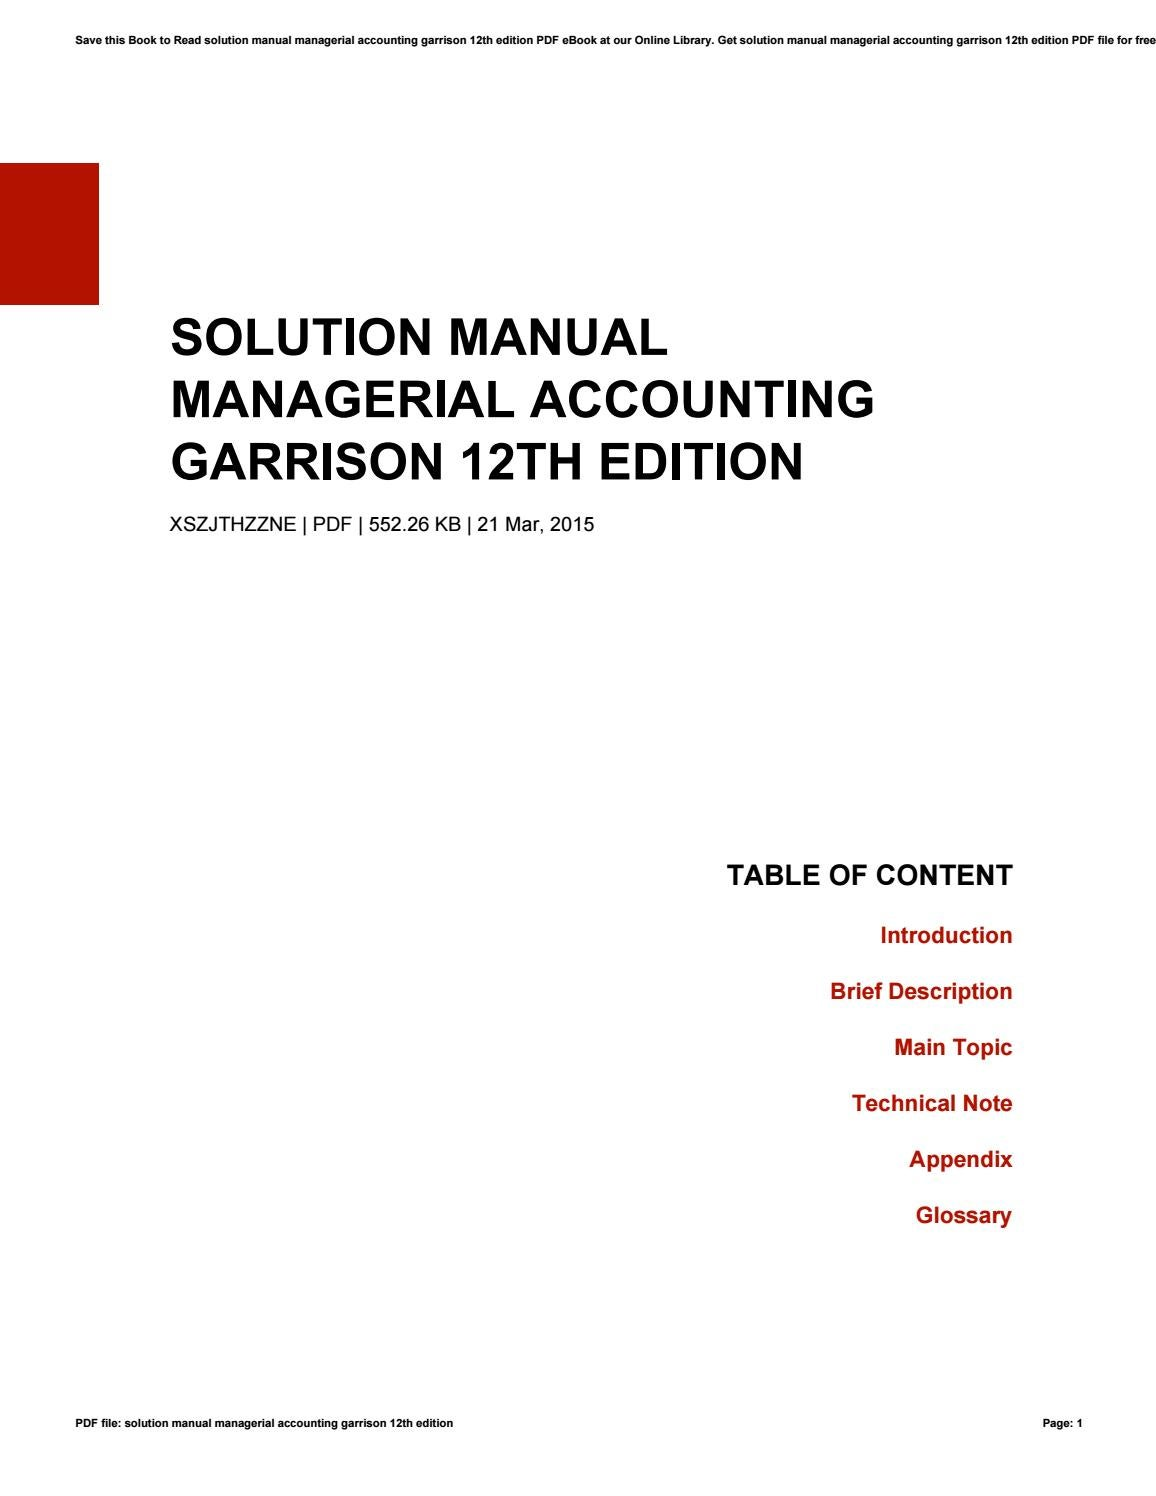 Solution manual managerial accounting garrison 12th edition by Maria - issuu